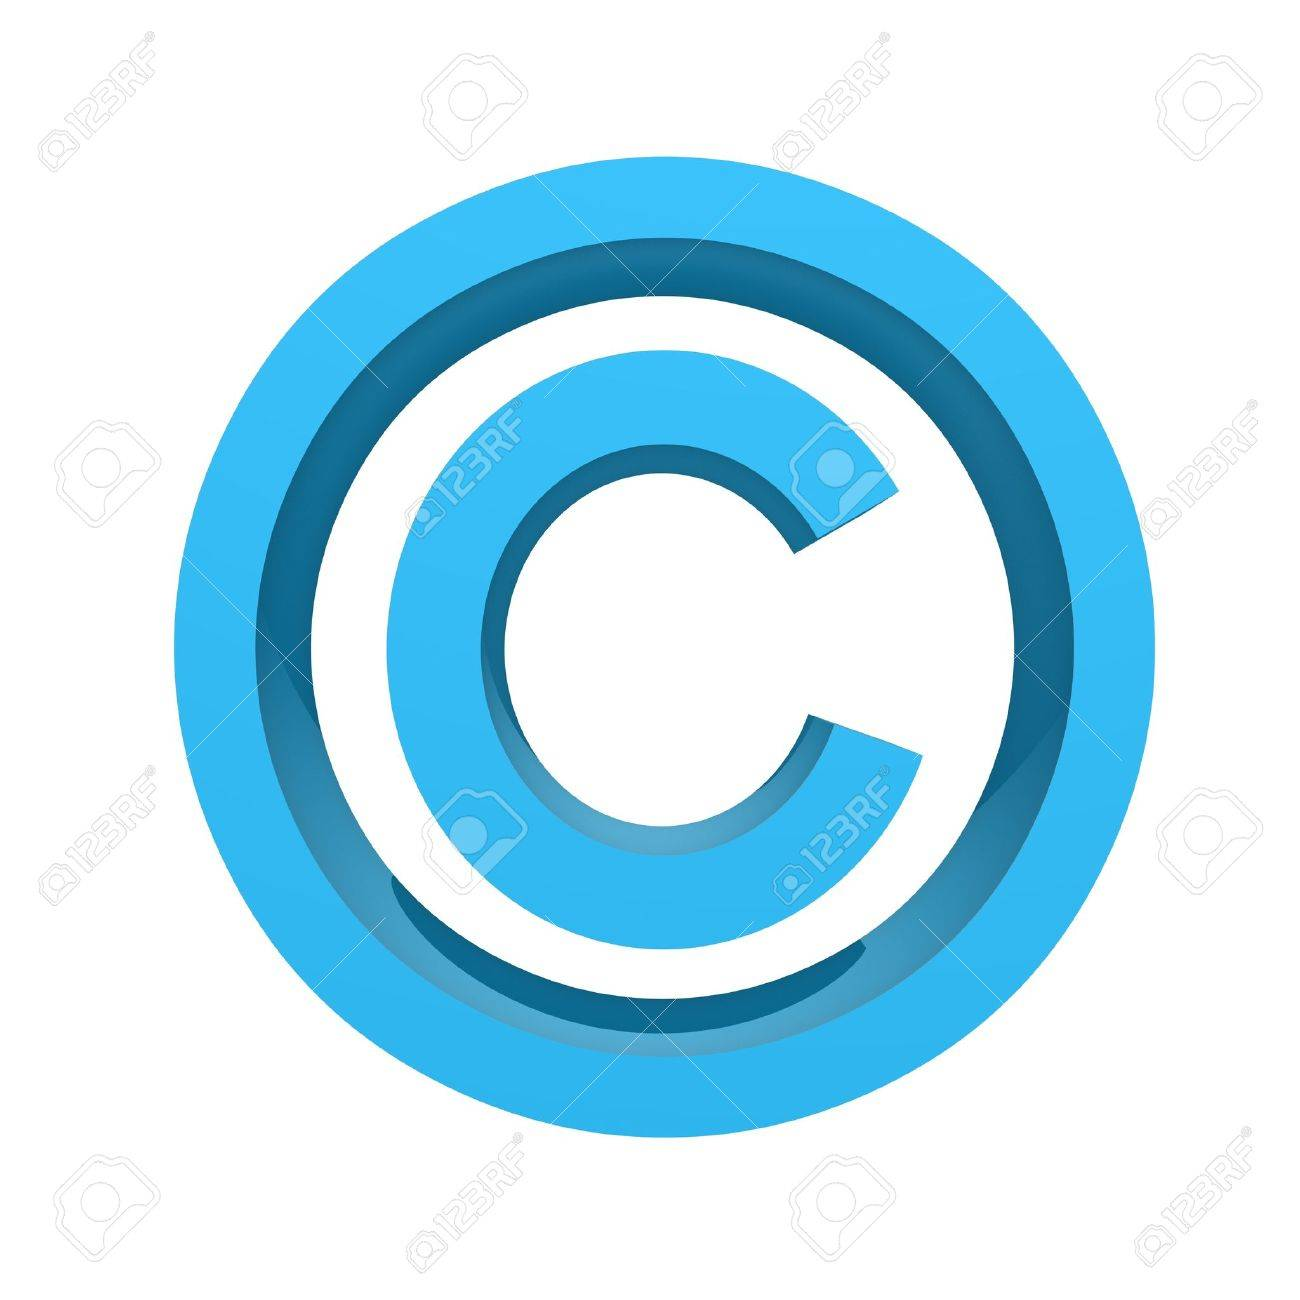 17043800-a-3d-copyright-symbol-isolated-against-a-white-background.